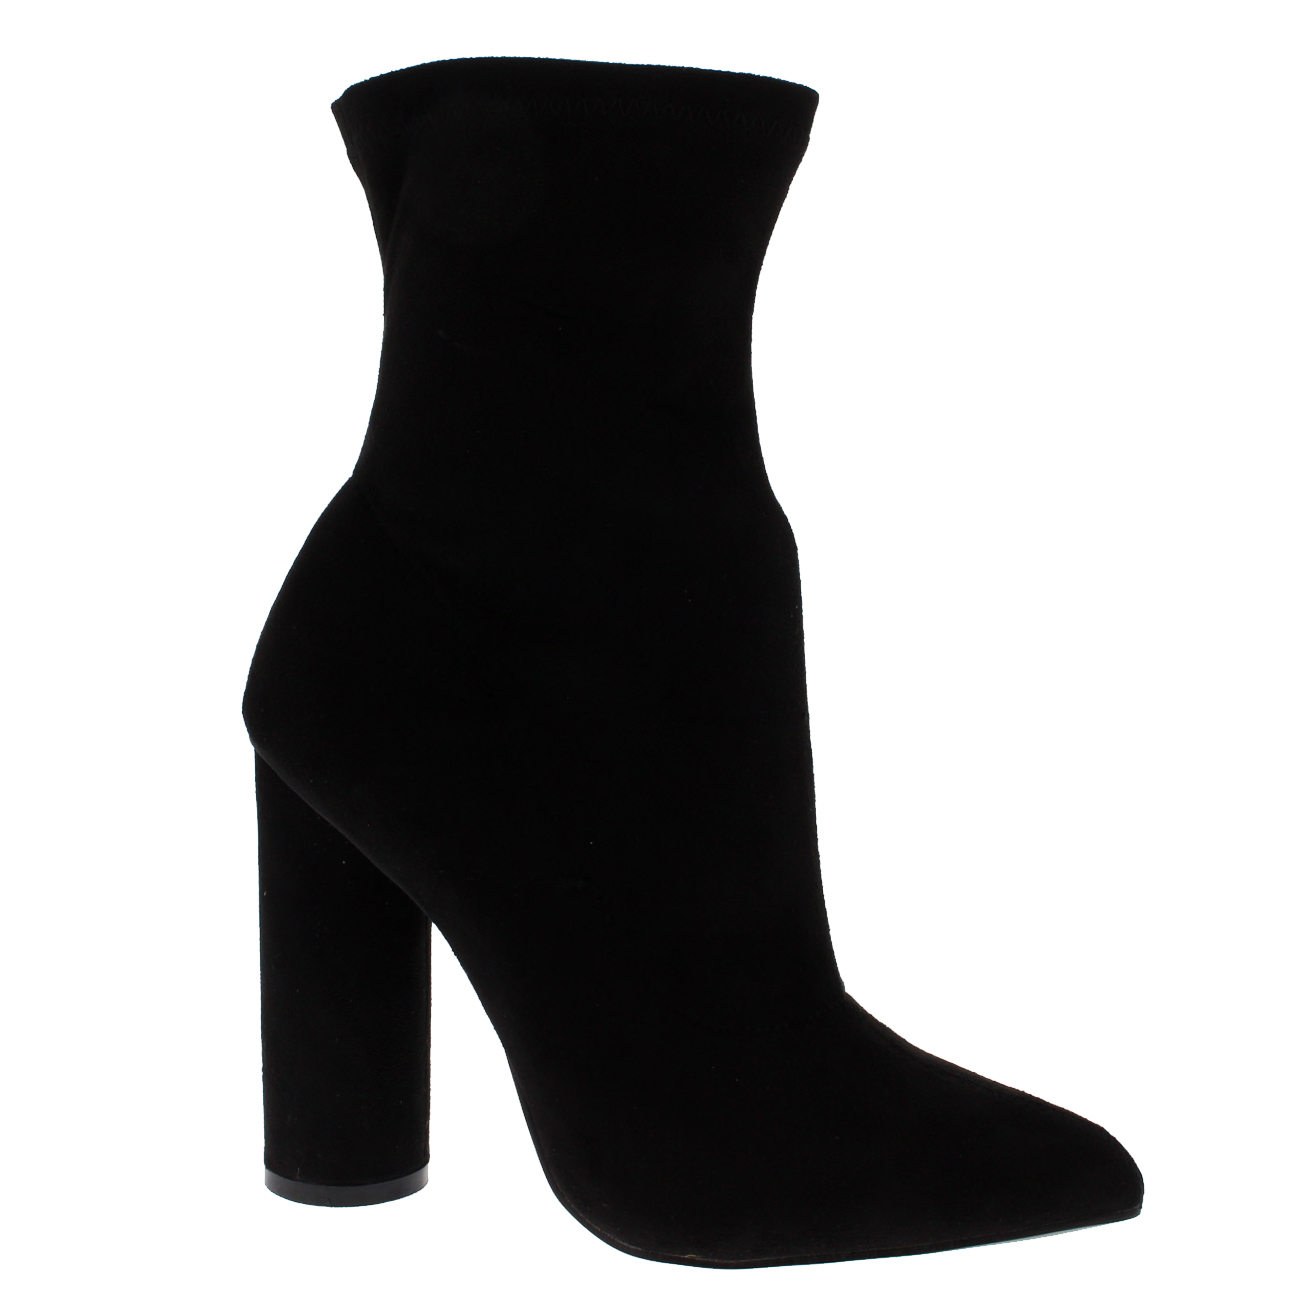 2e02c689430 Womens Sock Fit Pointed Toe Fashion Chic Dress Block Heel Ankle Boots